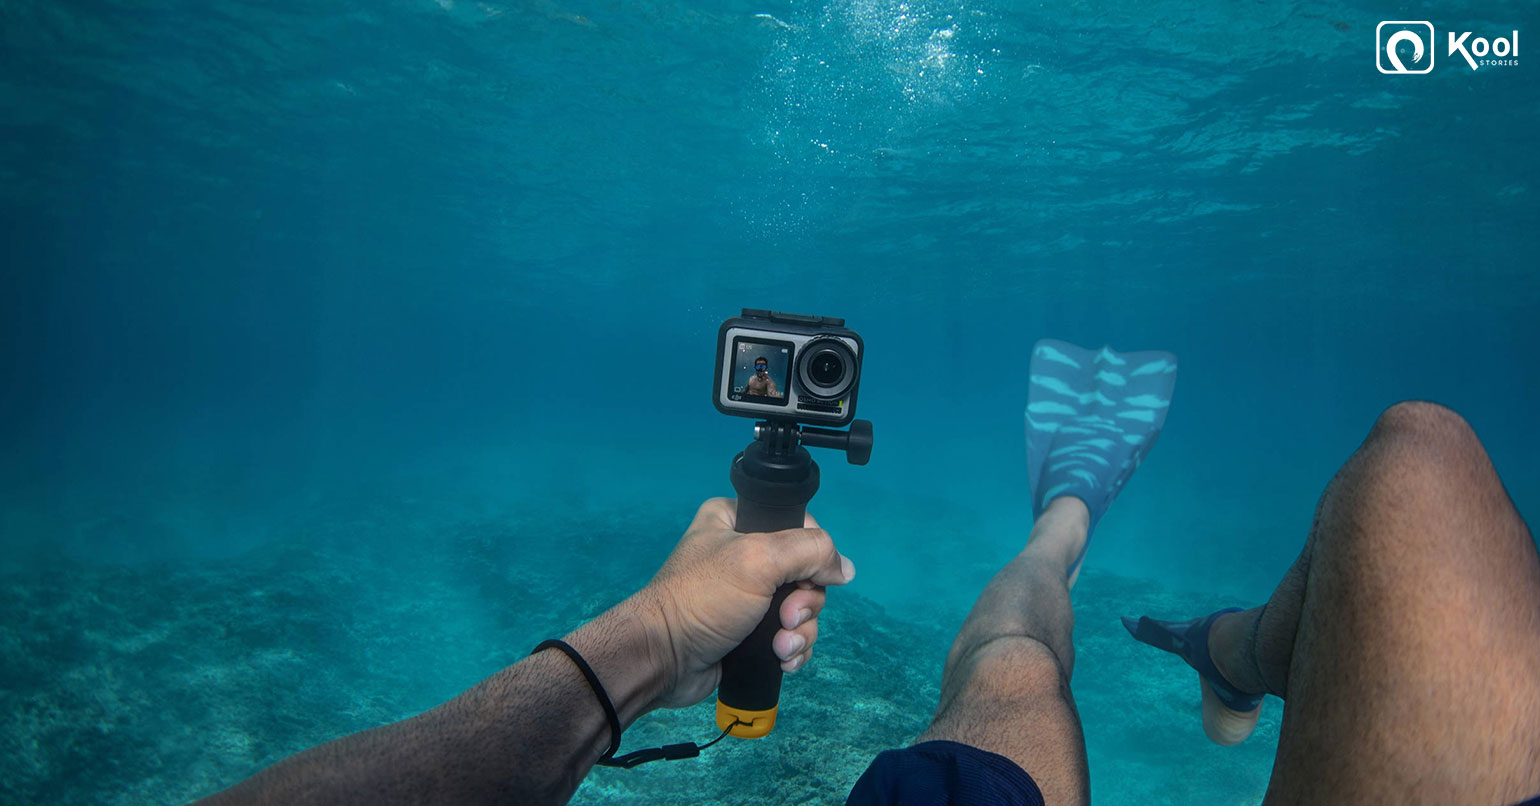 extreme videography